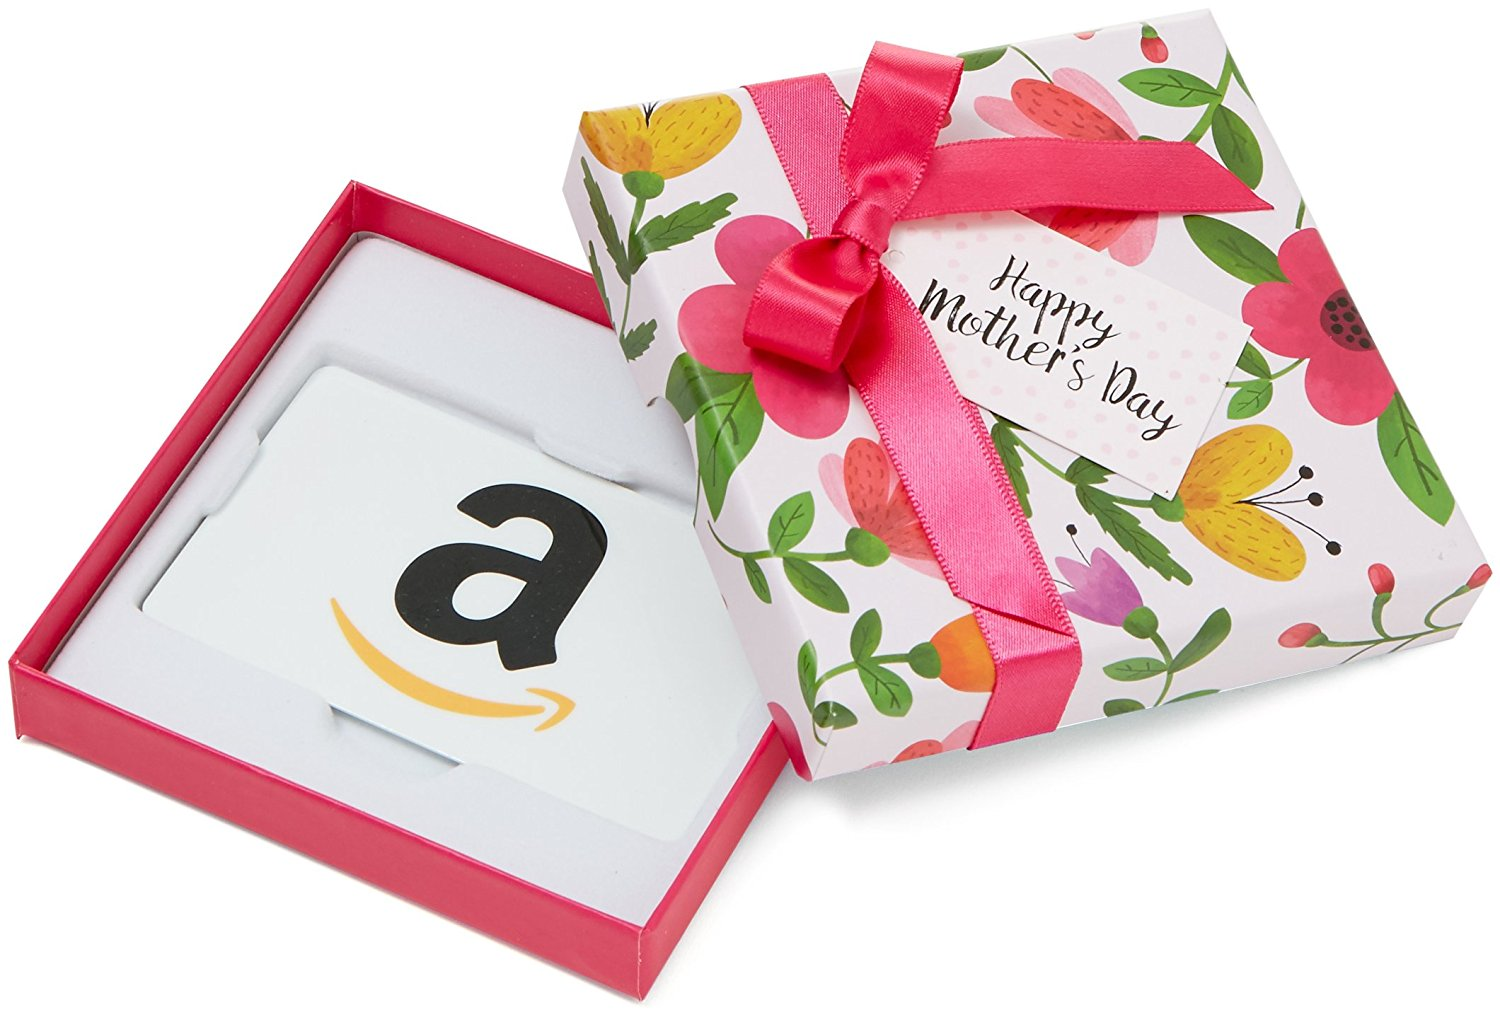 Amazon Gift Card in a Lovely Floral Gift Box – Perfect for Mother's Day, Available in Any Amount